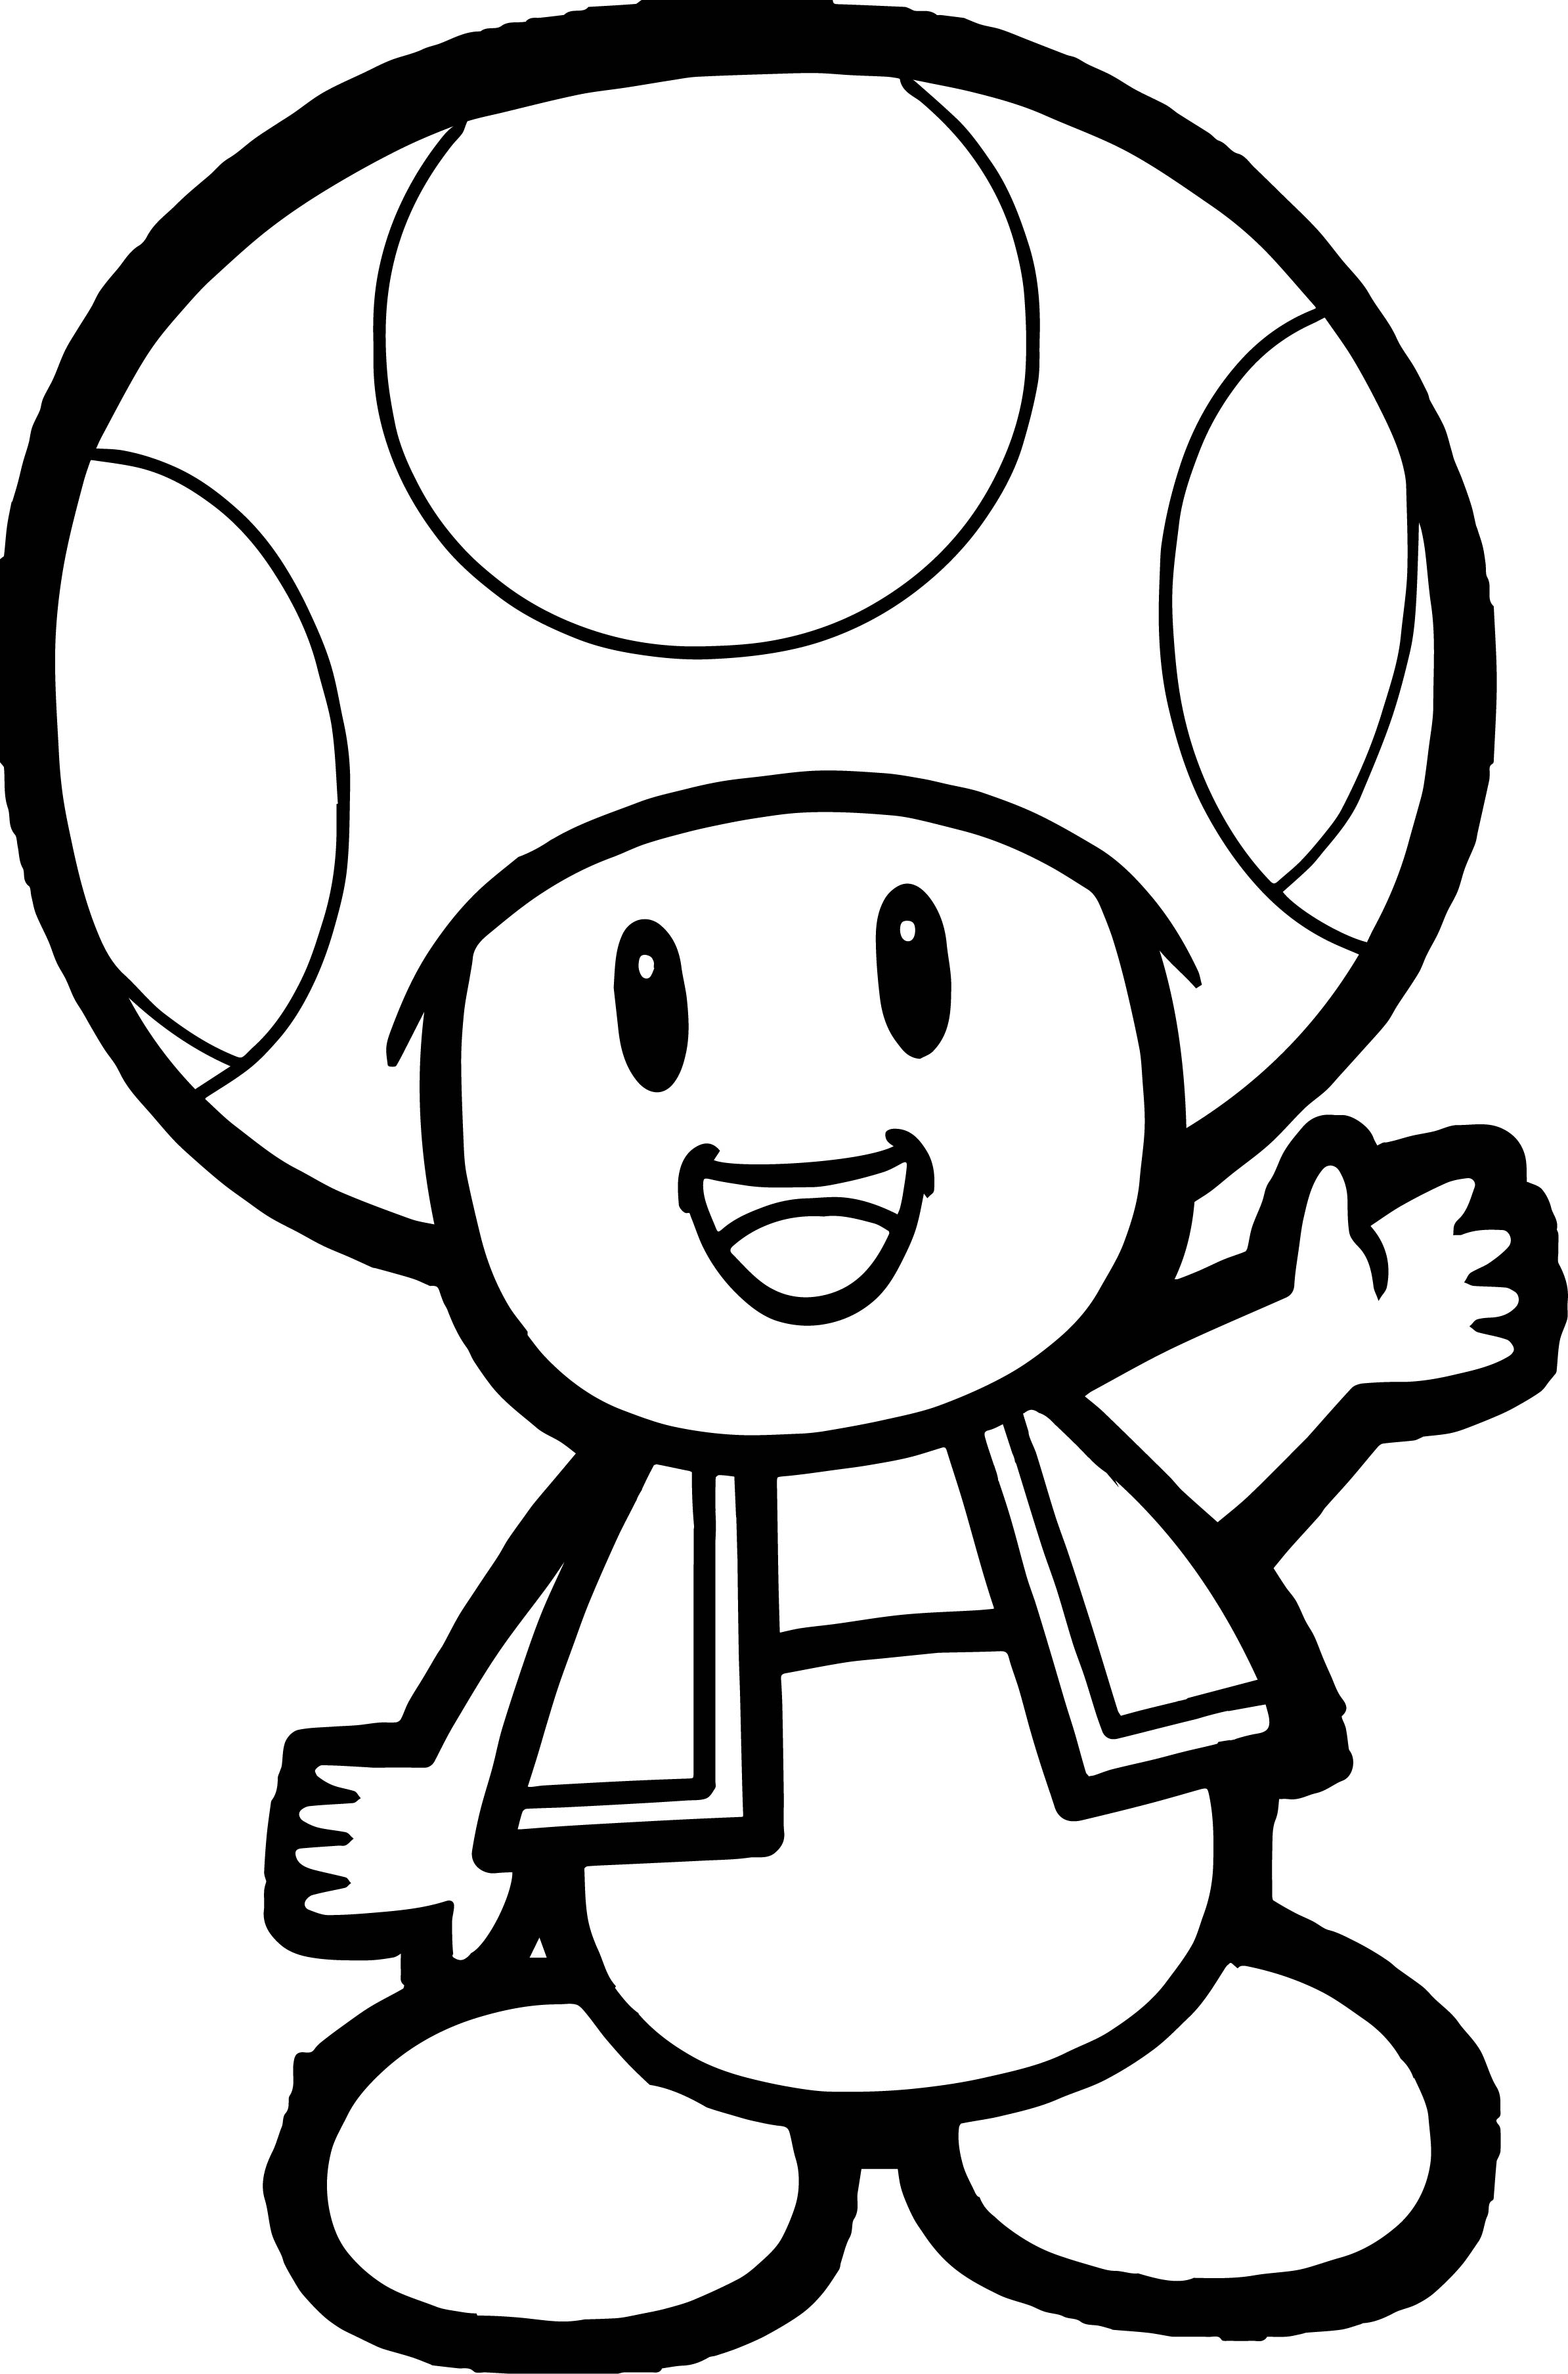 Toad Mario Coloring Pages Printable Coloring Pages